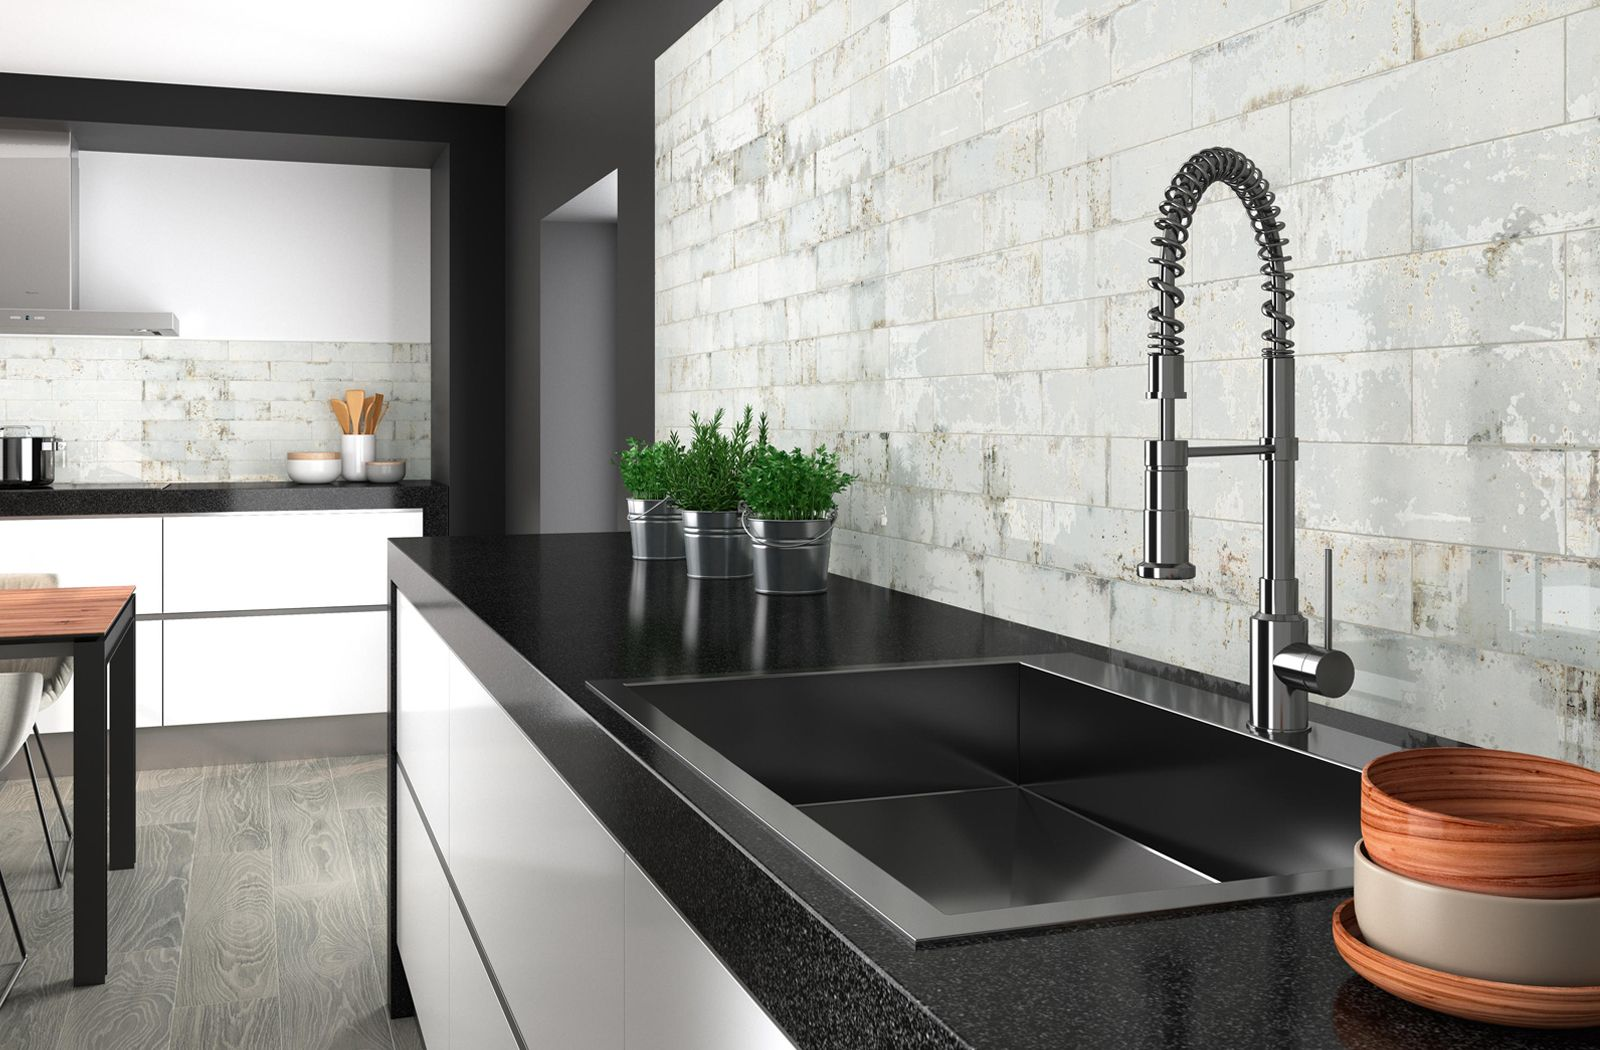 Modern industrial kitchen with Grunge wall tiles from